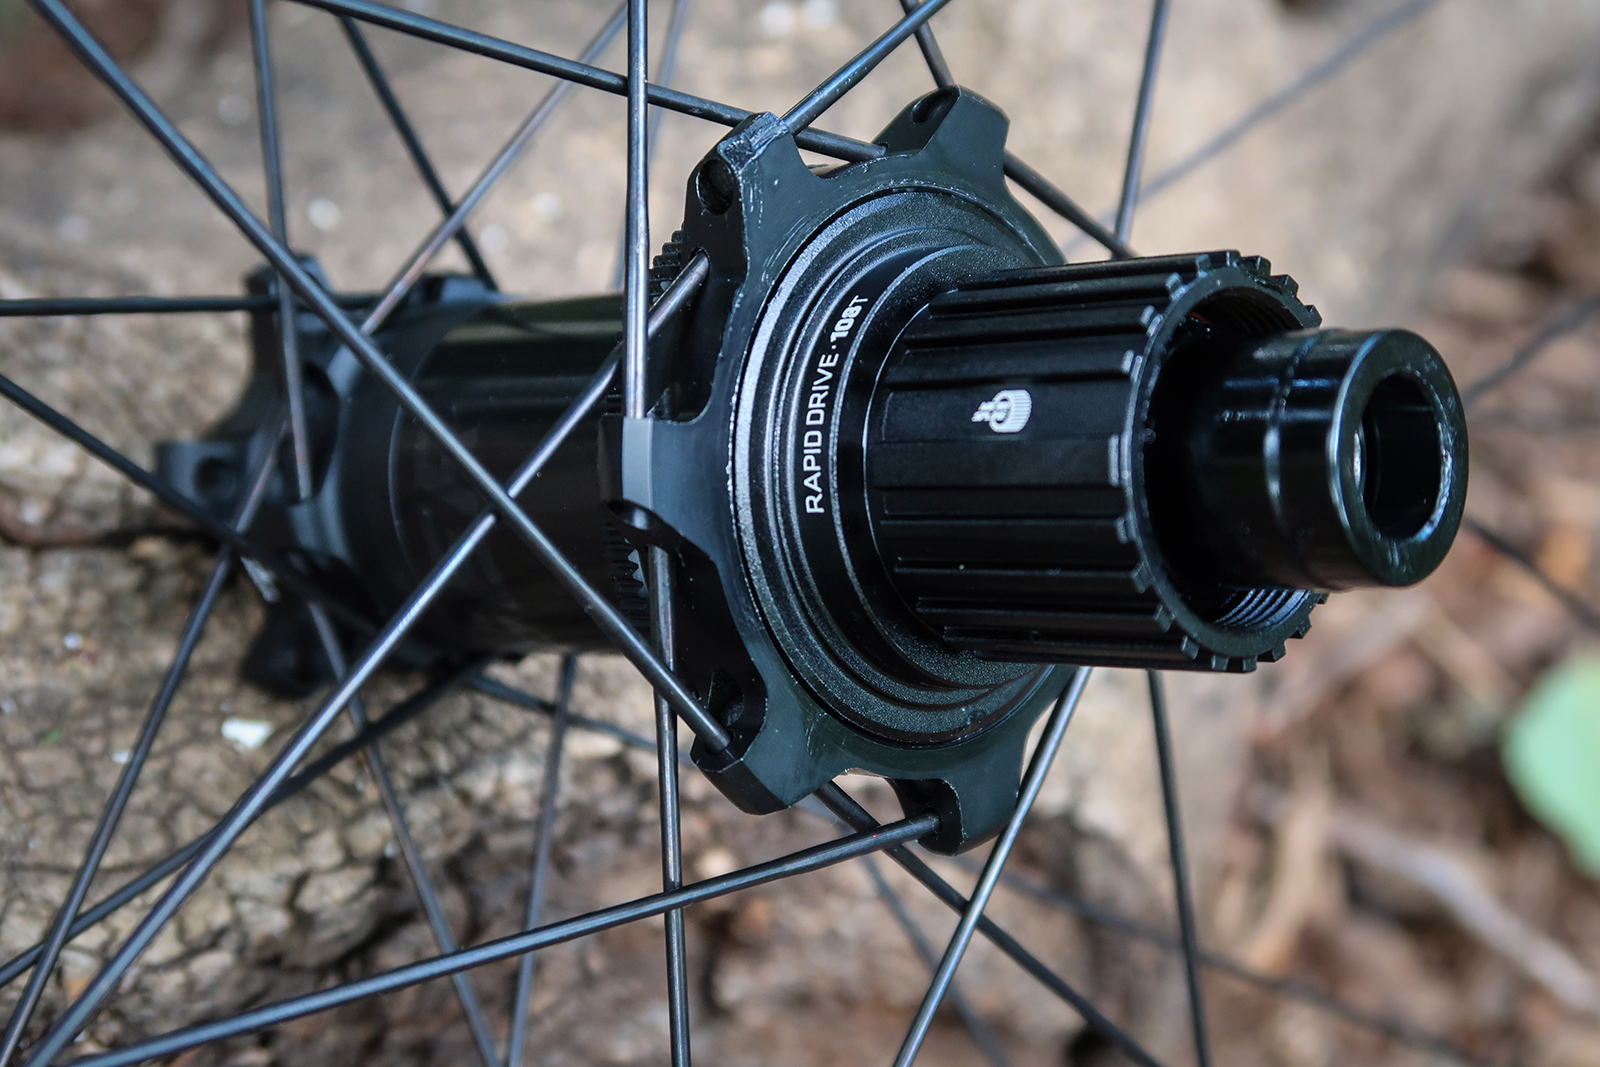 Bontrager's Rapid Drive freehub is quick on the trail and easy to service.